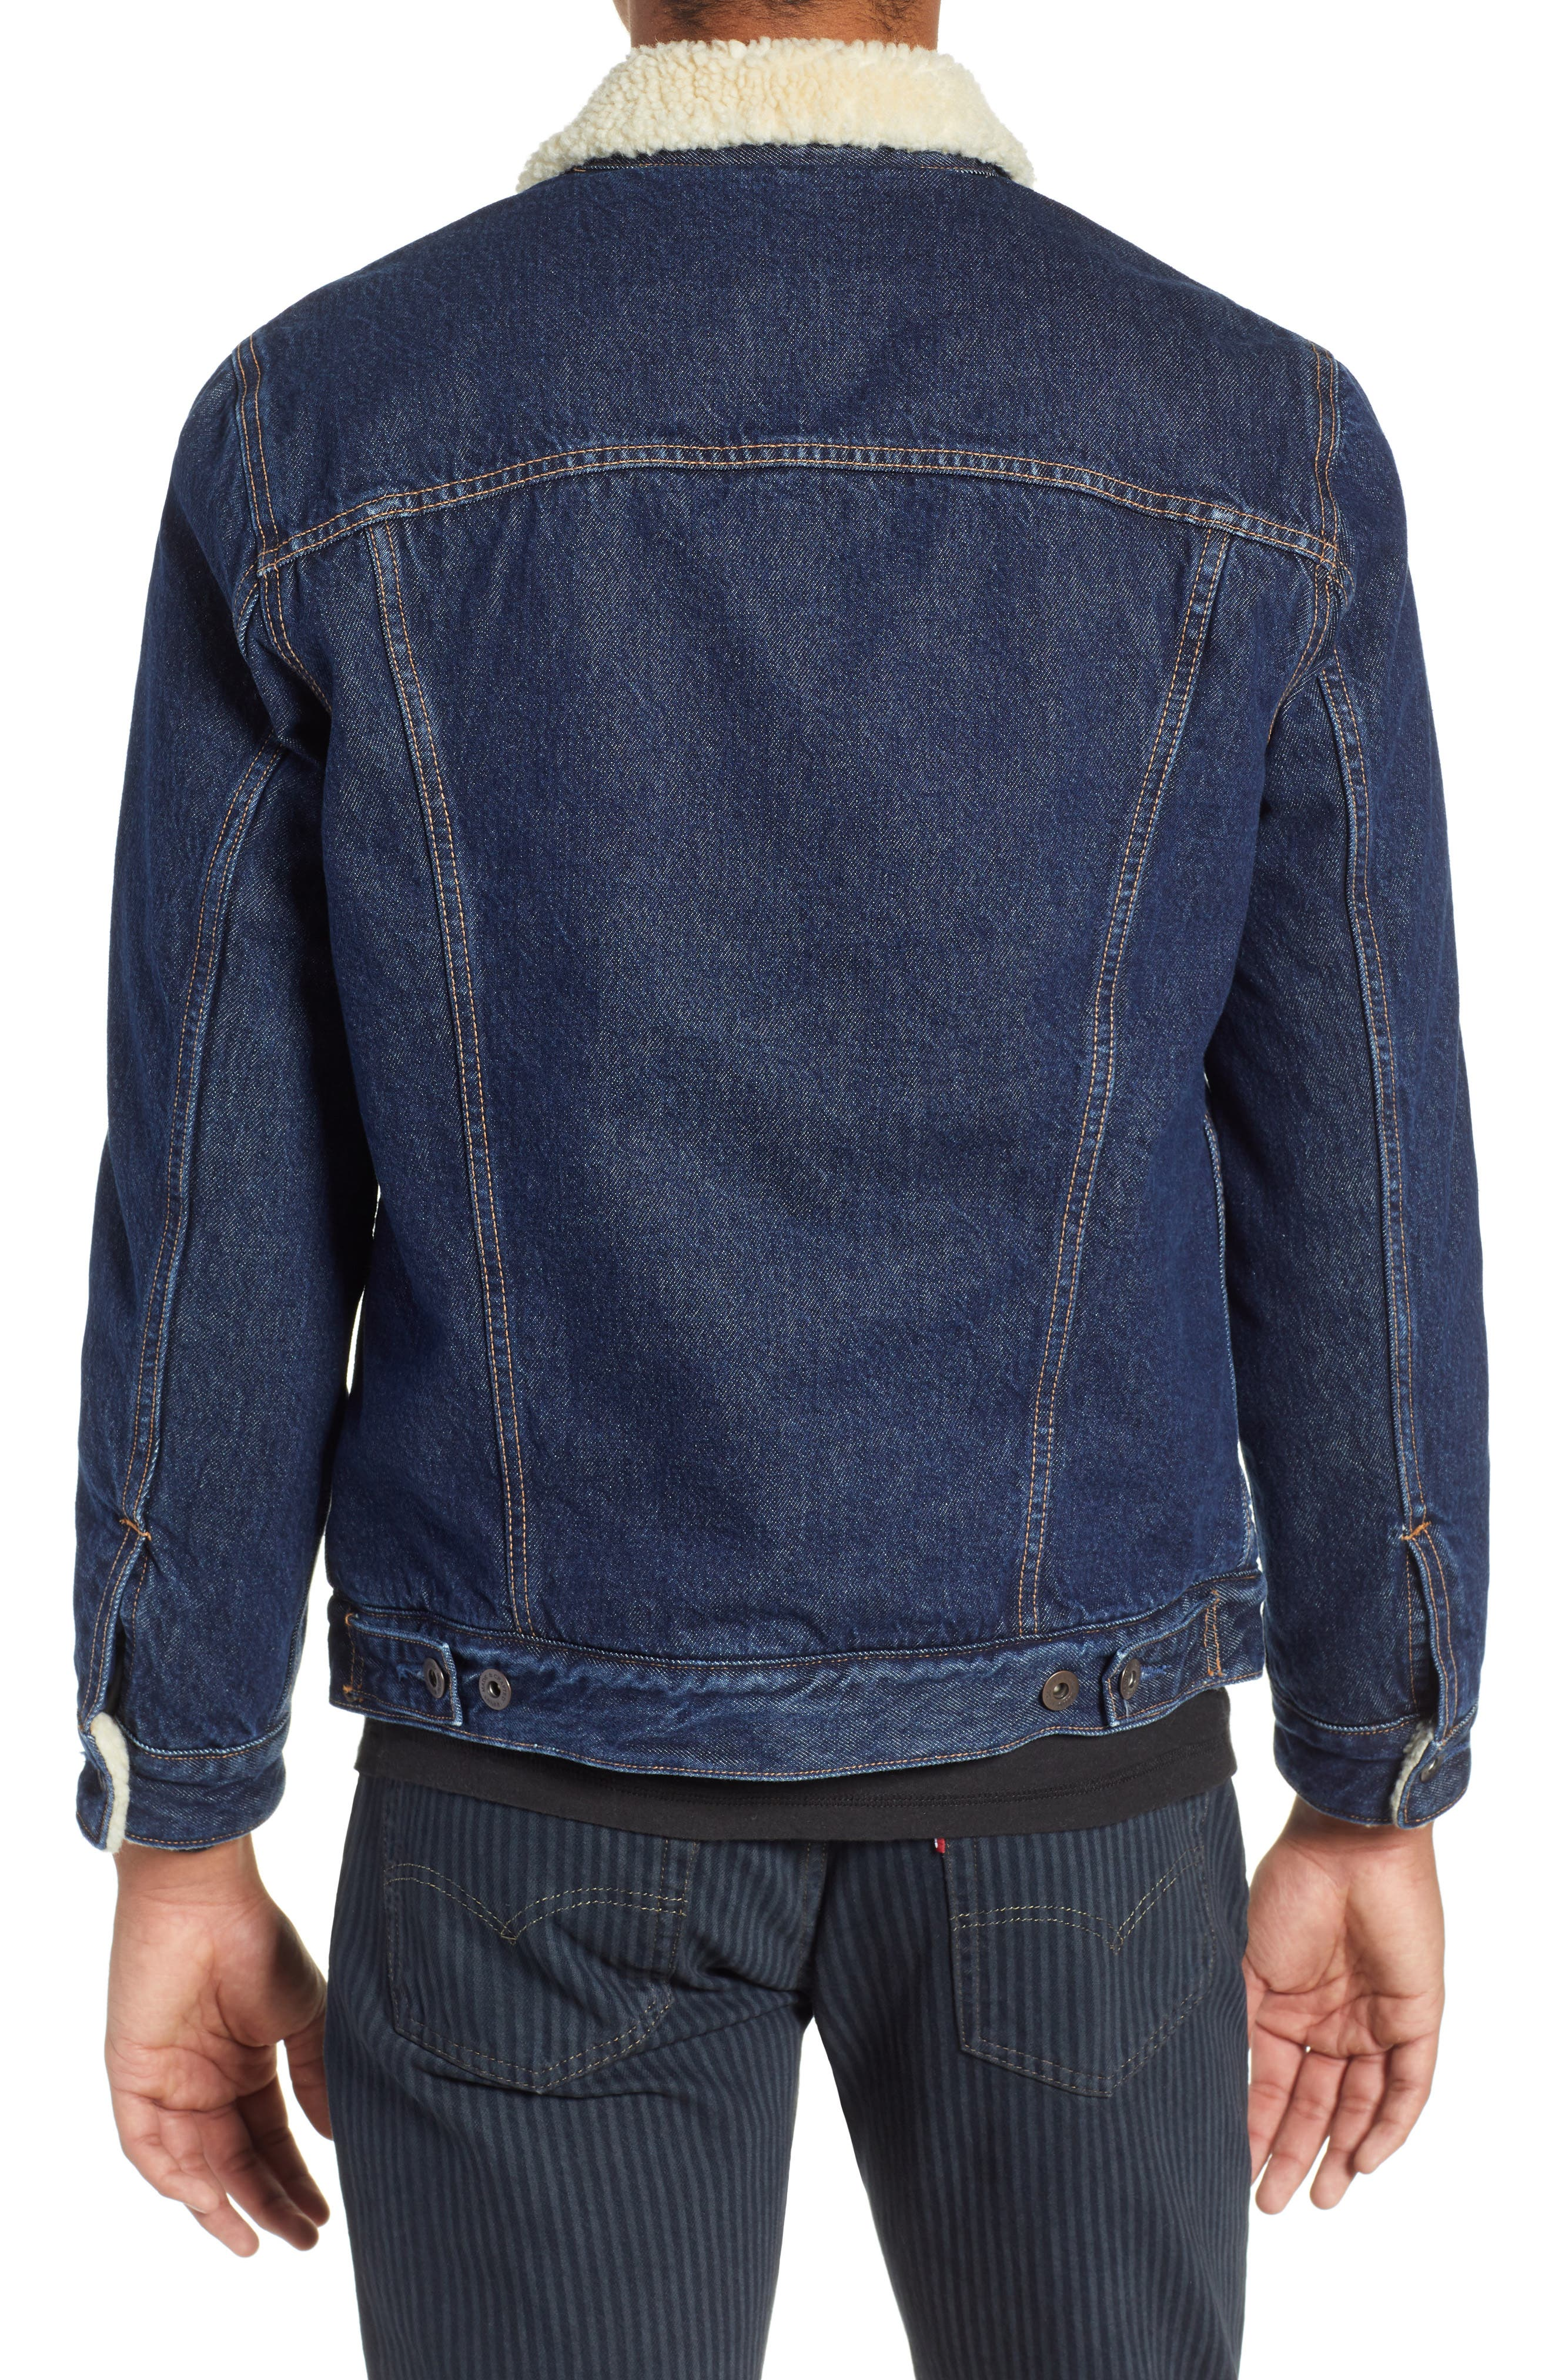 Levi's Made & Crafted<sup>™</sup> Faux Shearling Lined Denim Jacket,                             Alternate thumbnail 2, color,                             CANYON